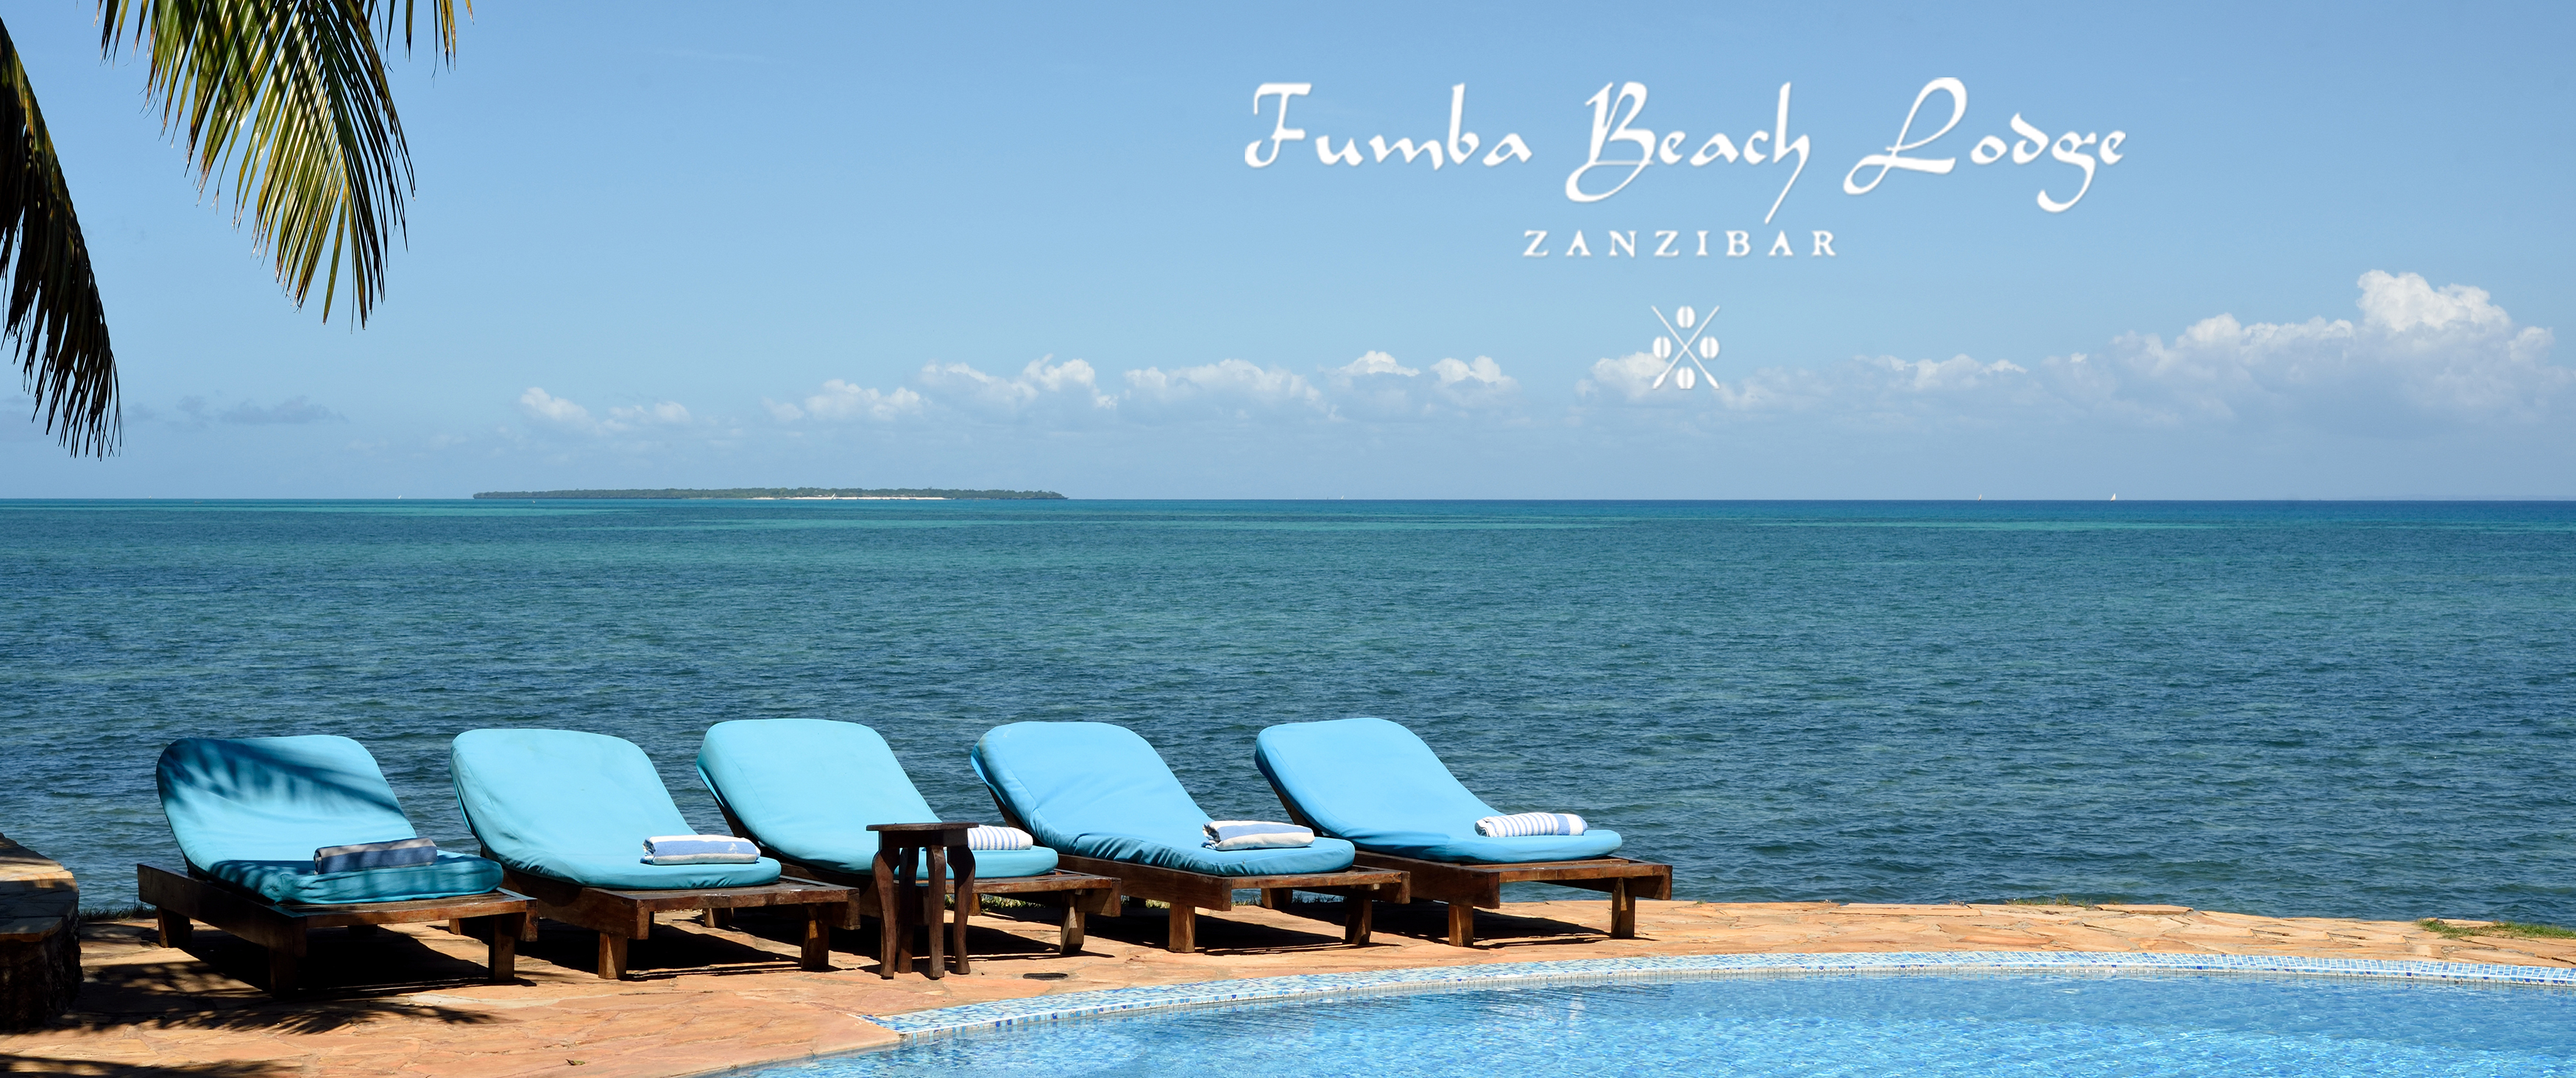 Fumba Beach Lodge Swimming Pool View